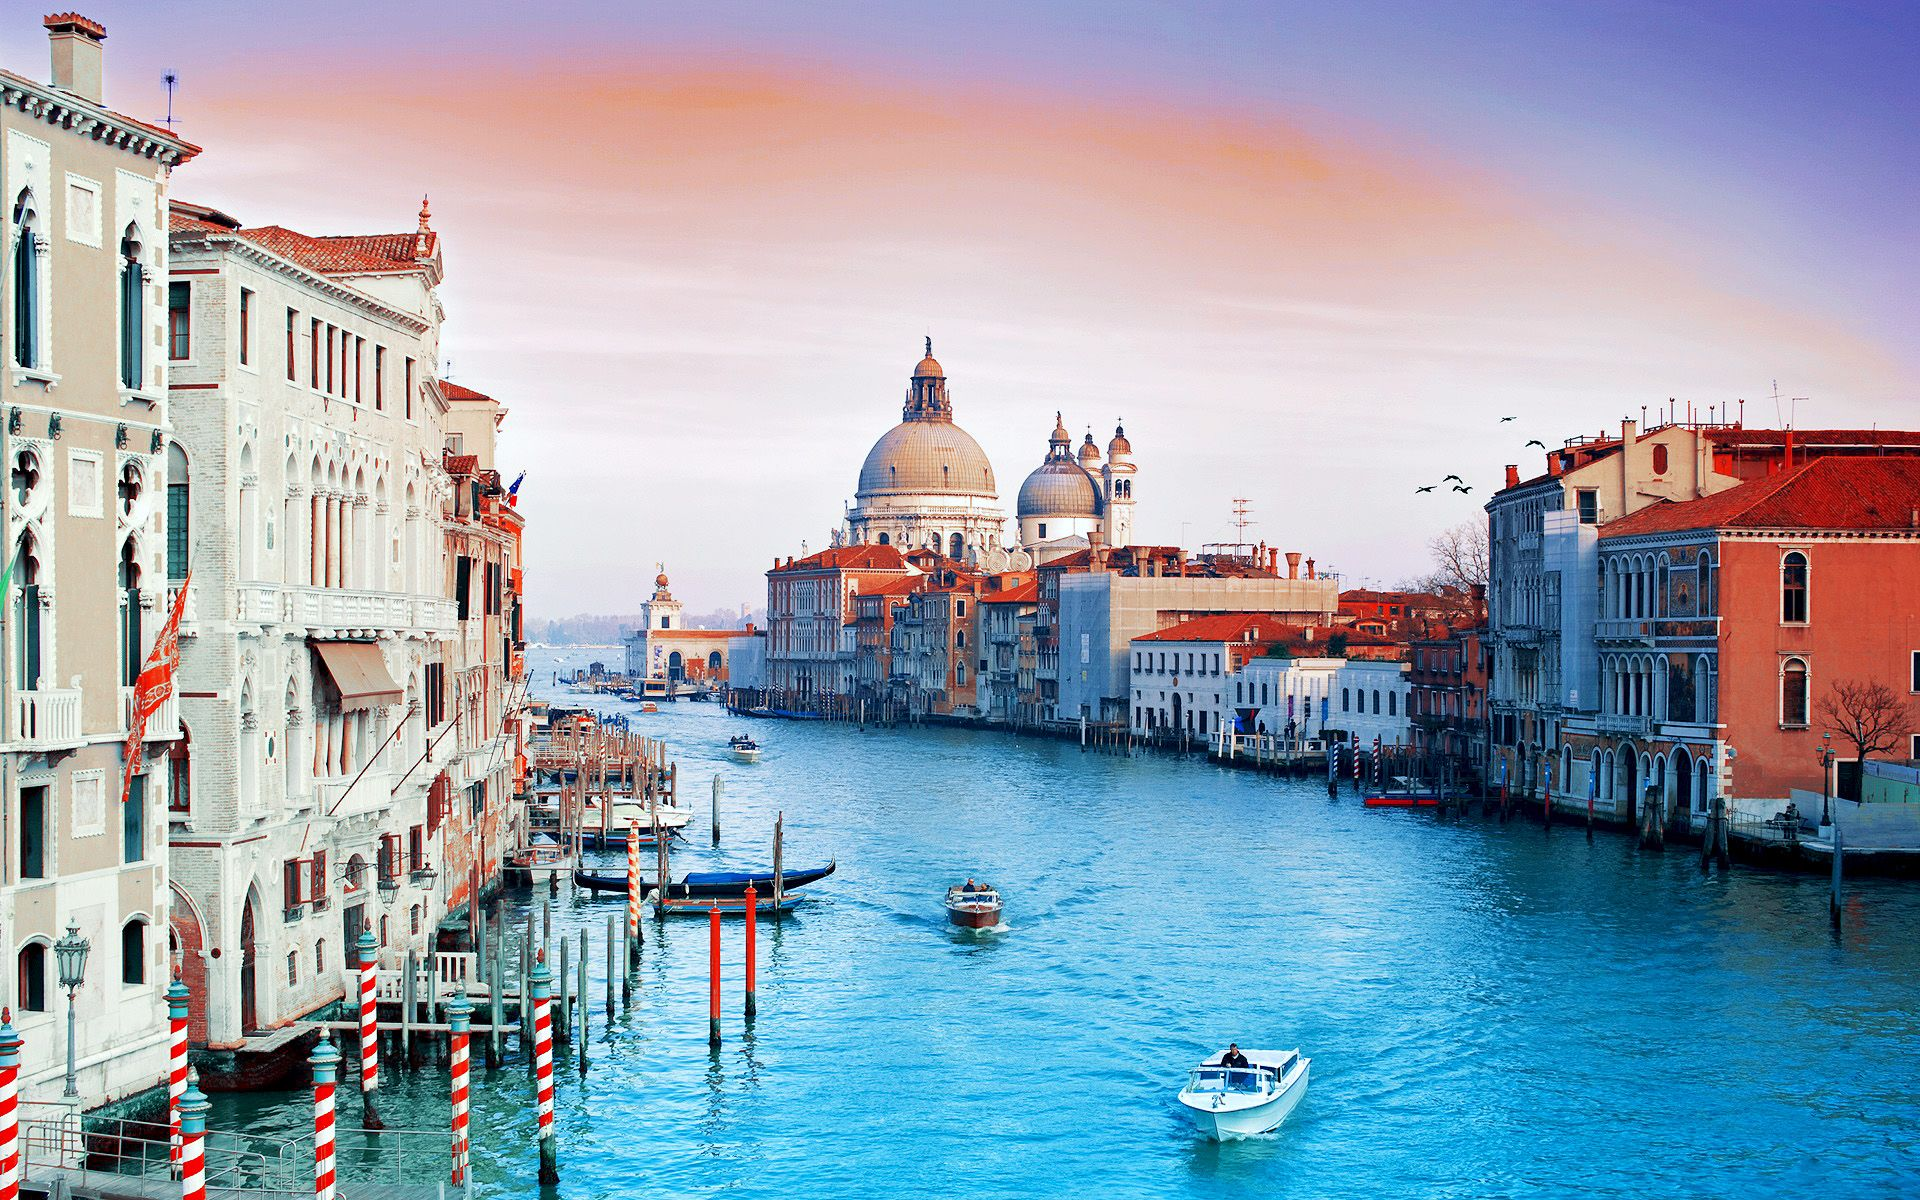 World Beautiful Places HD Wallpapers Find Best Latest For Your PC Desktop Background Mobile Phones